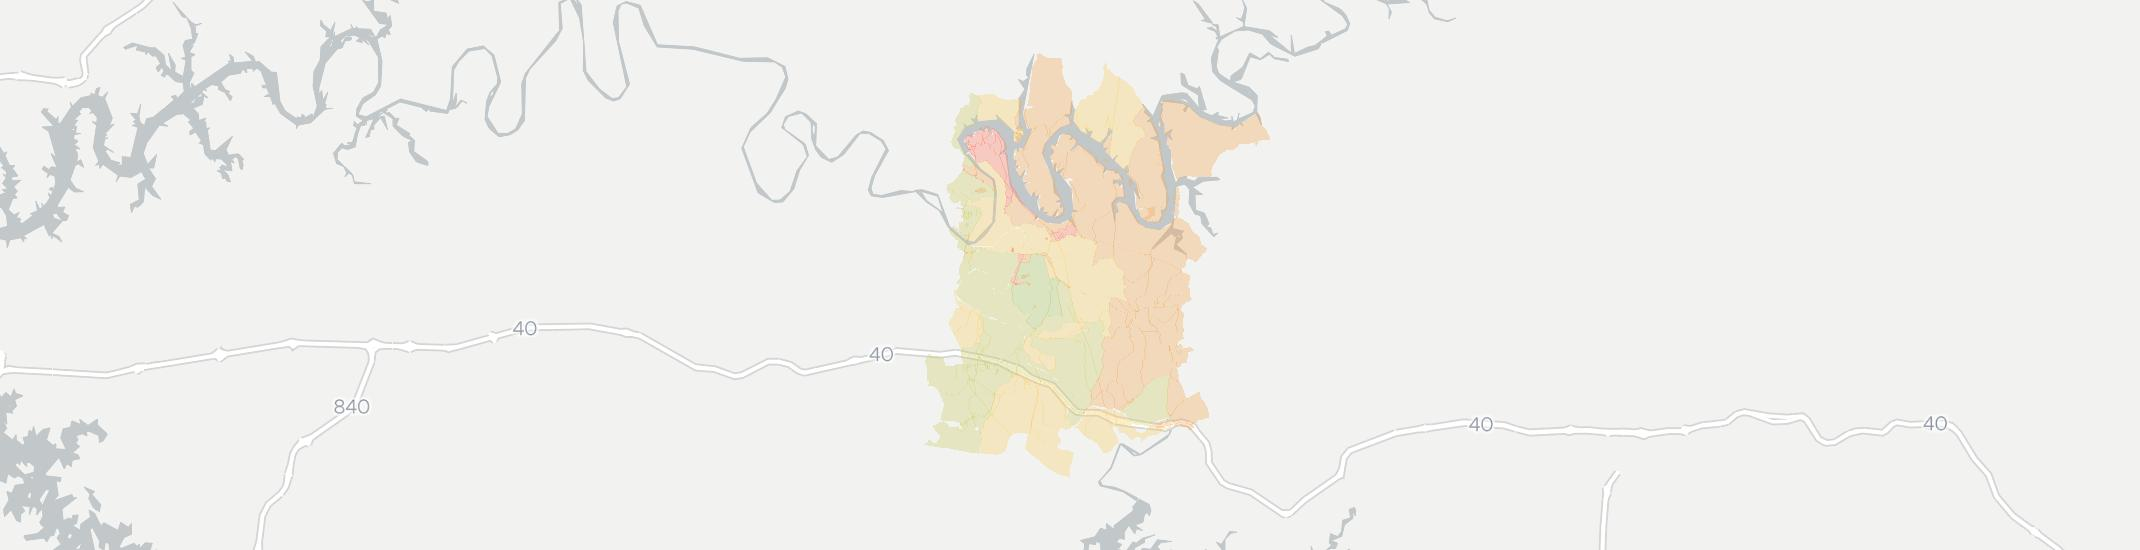 Elmwood Internet Competition Map. Click for interactive map.